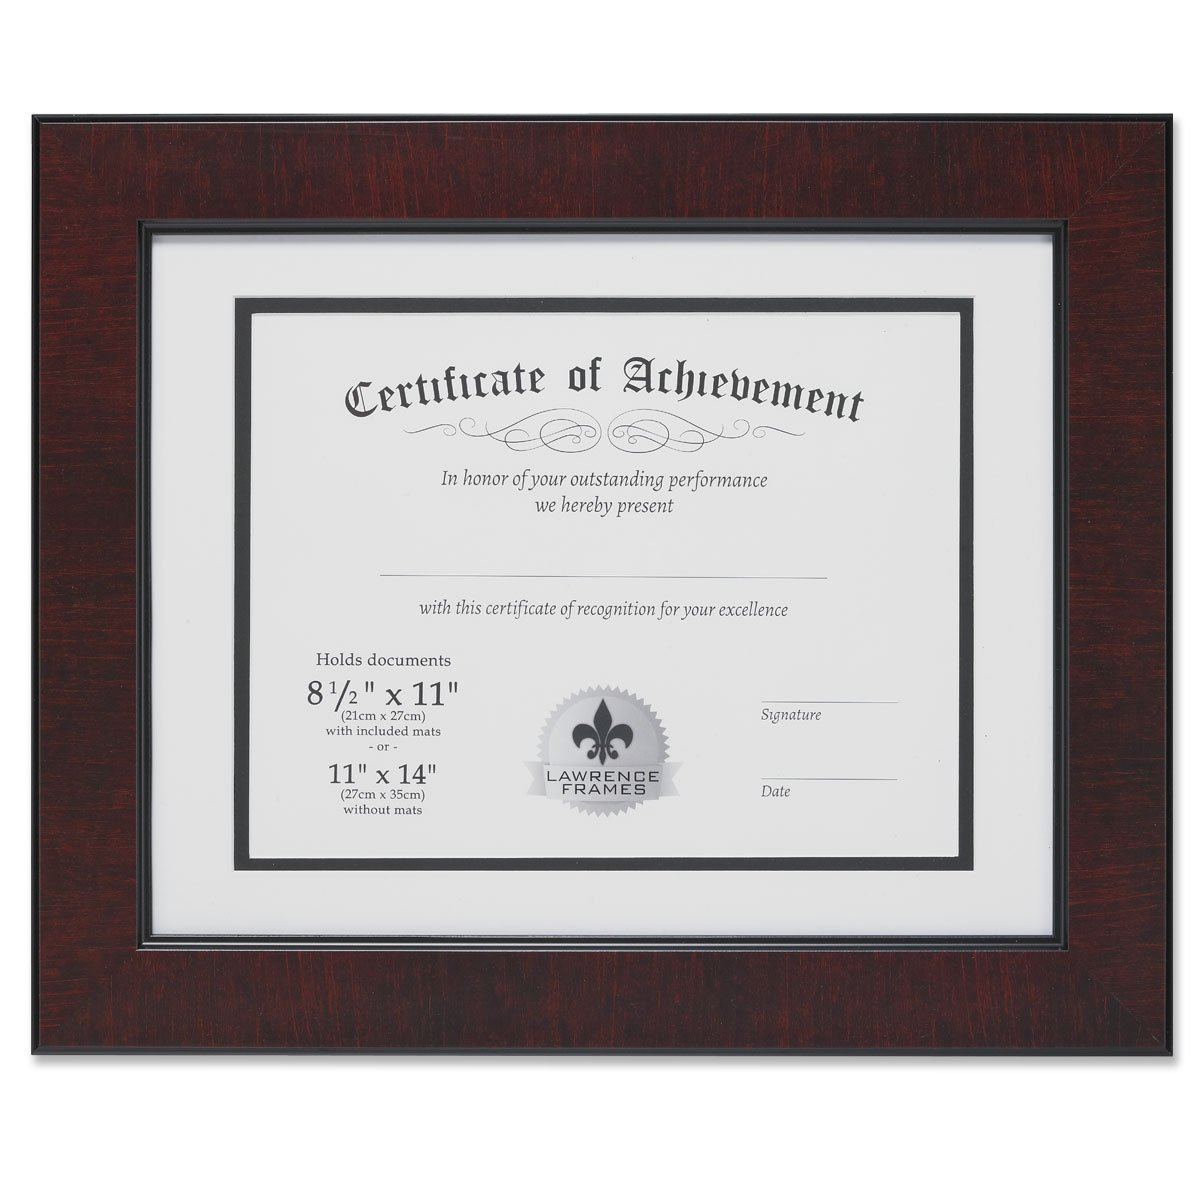 Lawrence Frames Dual Use Faux Burl 11 14-Inch Certificate Picture Frame Double Bevel Cut Matting 8.5 11-Inch Document, Mahogany